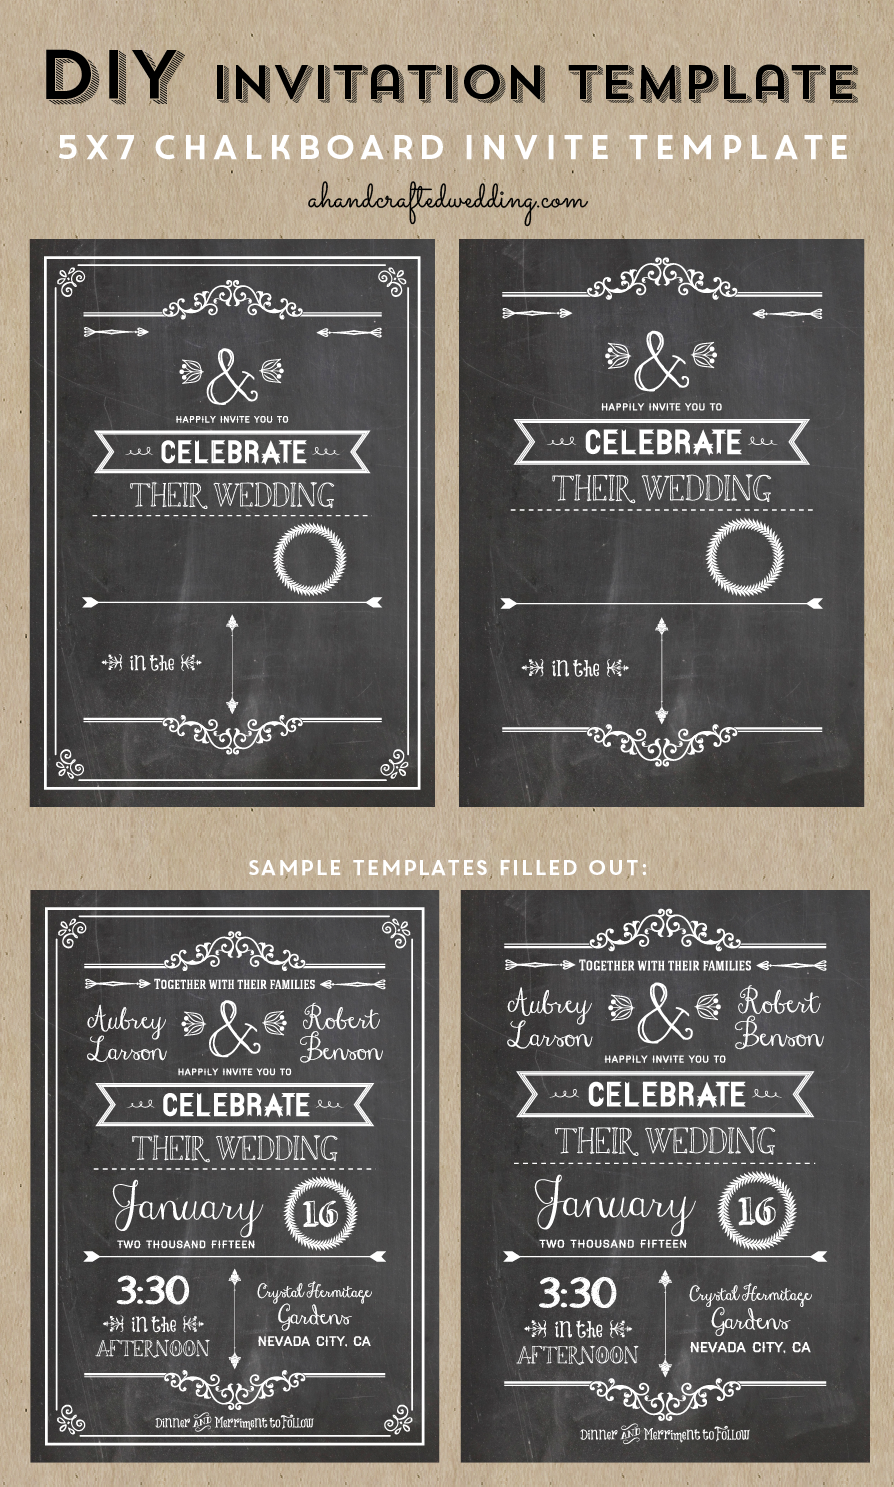 Chalkboard Wedding Invitations on Pinterest | Slate ...